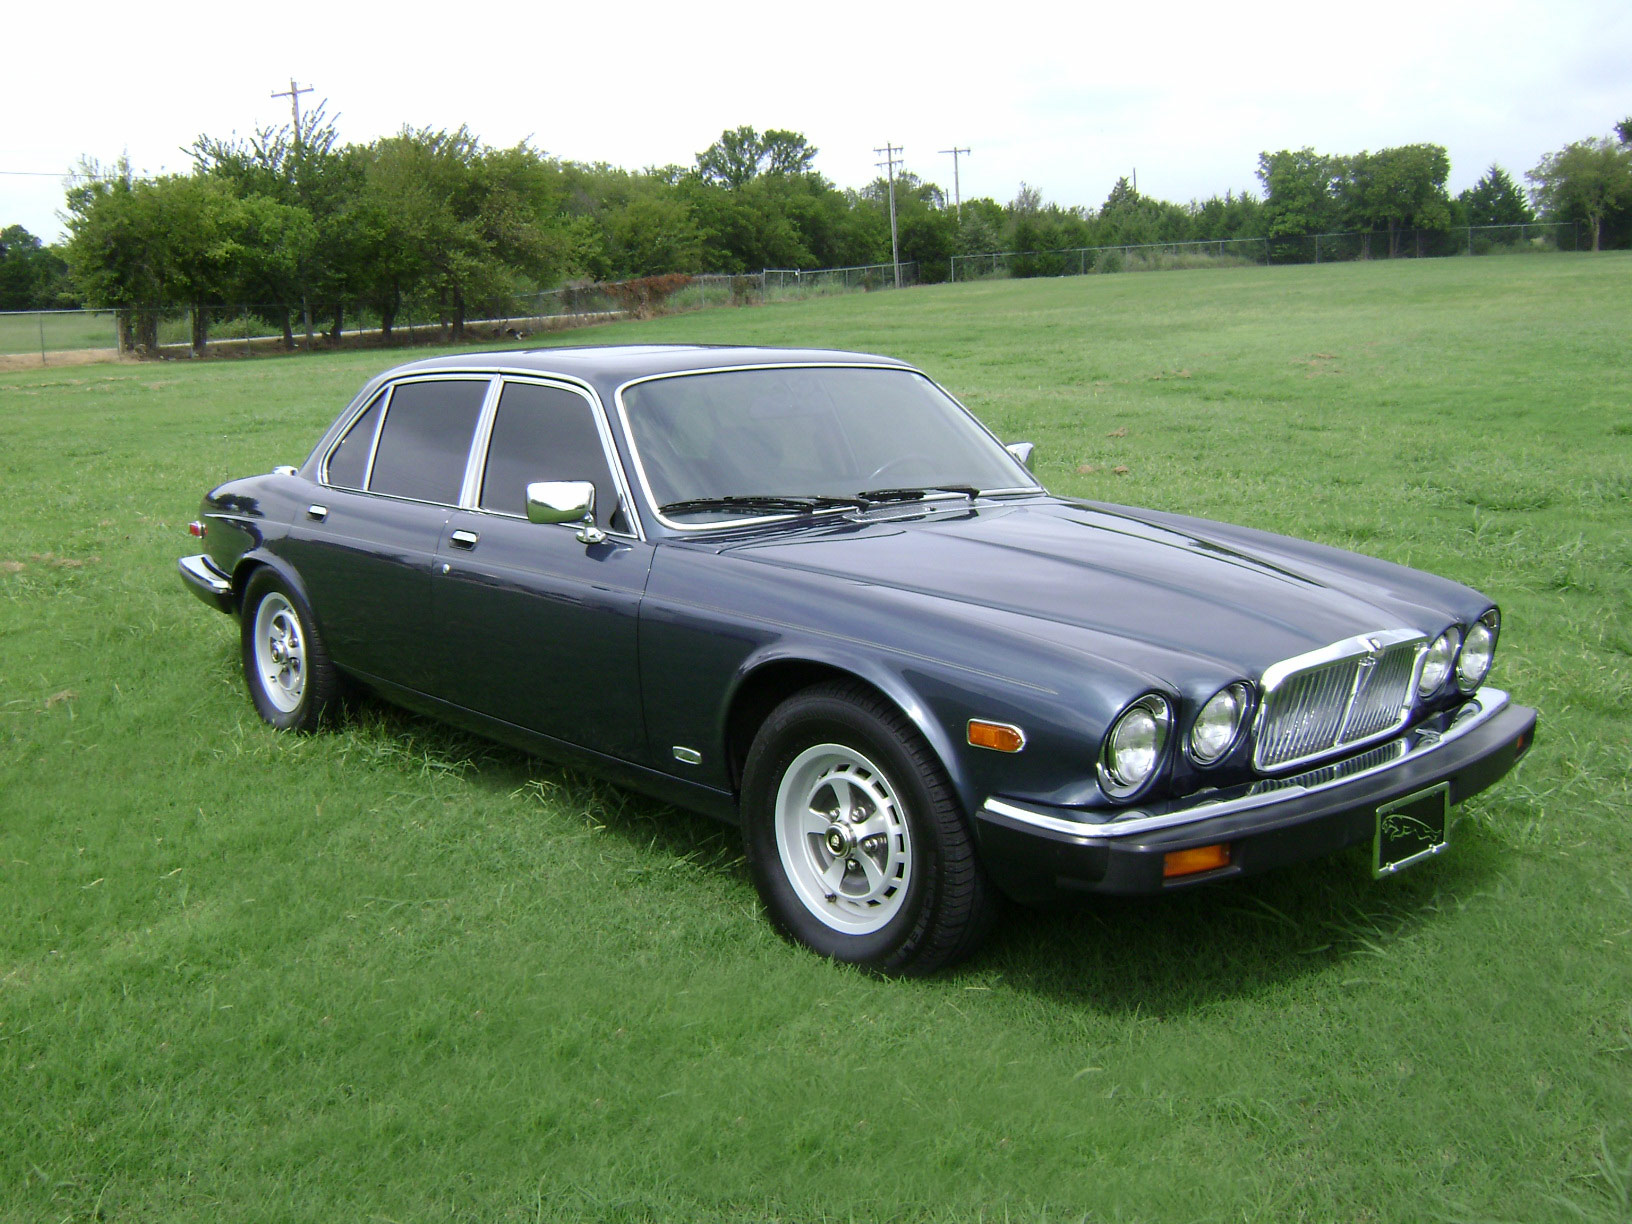 Jaguar xj-6 photo - 1